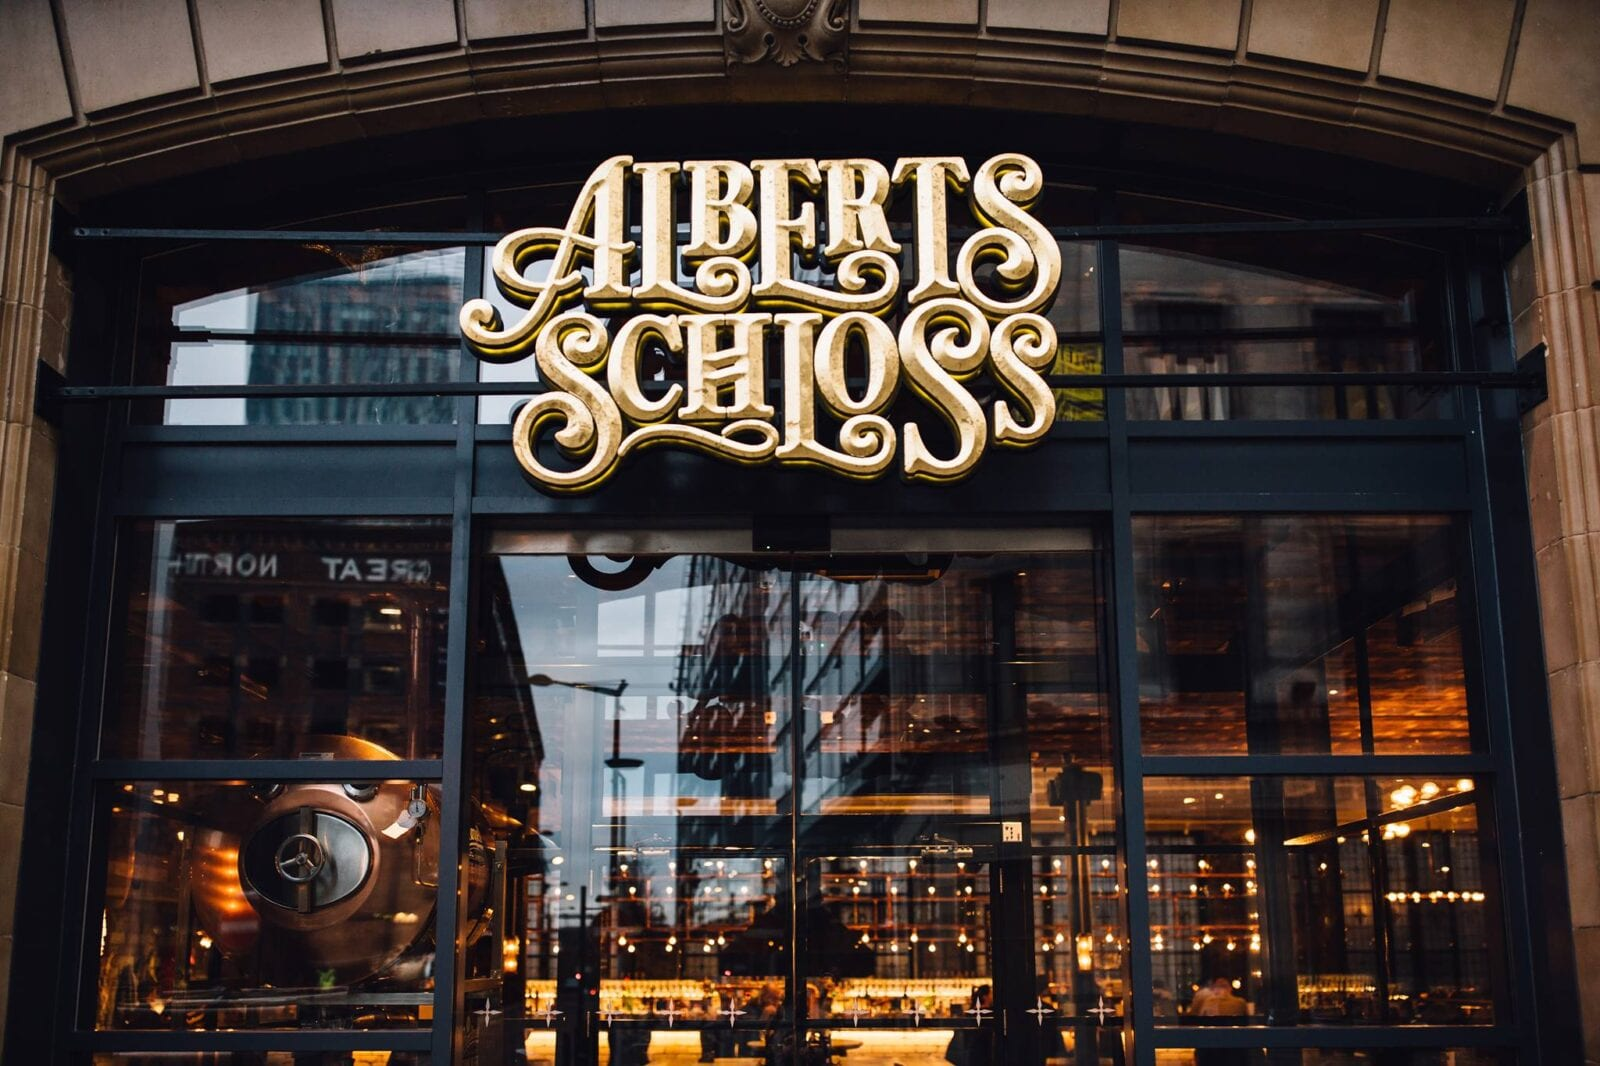 Co-founders of Albert's Schloss set to open new venue in Northern Quarter, The Manc